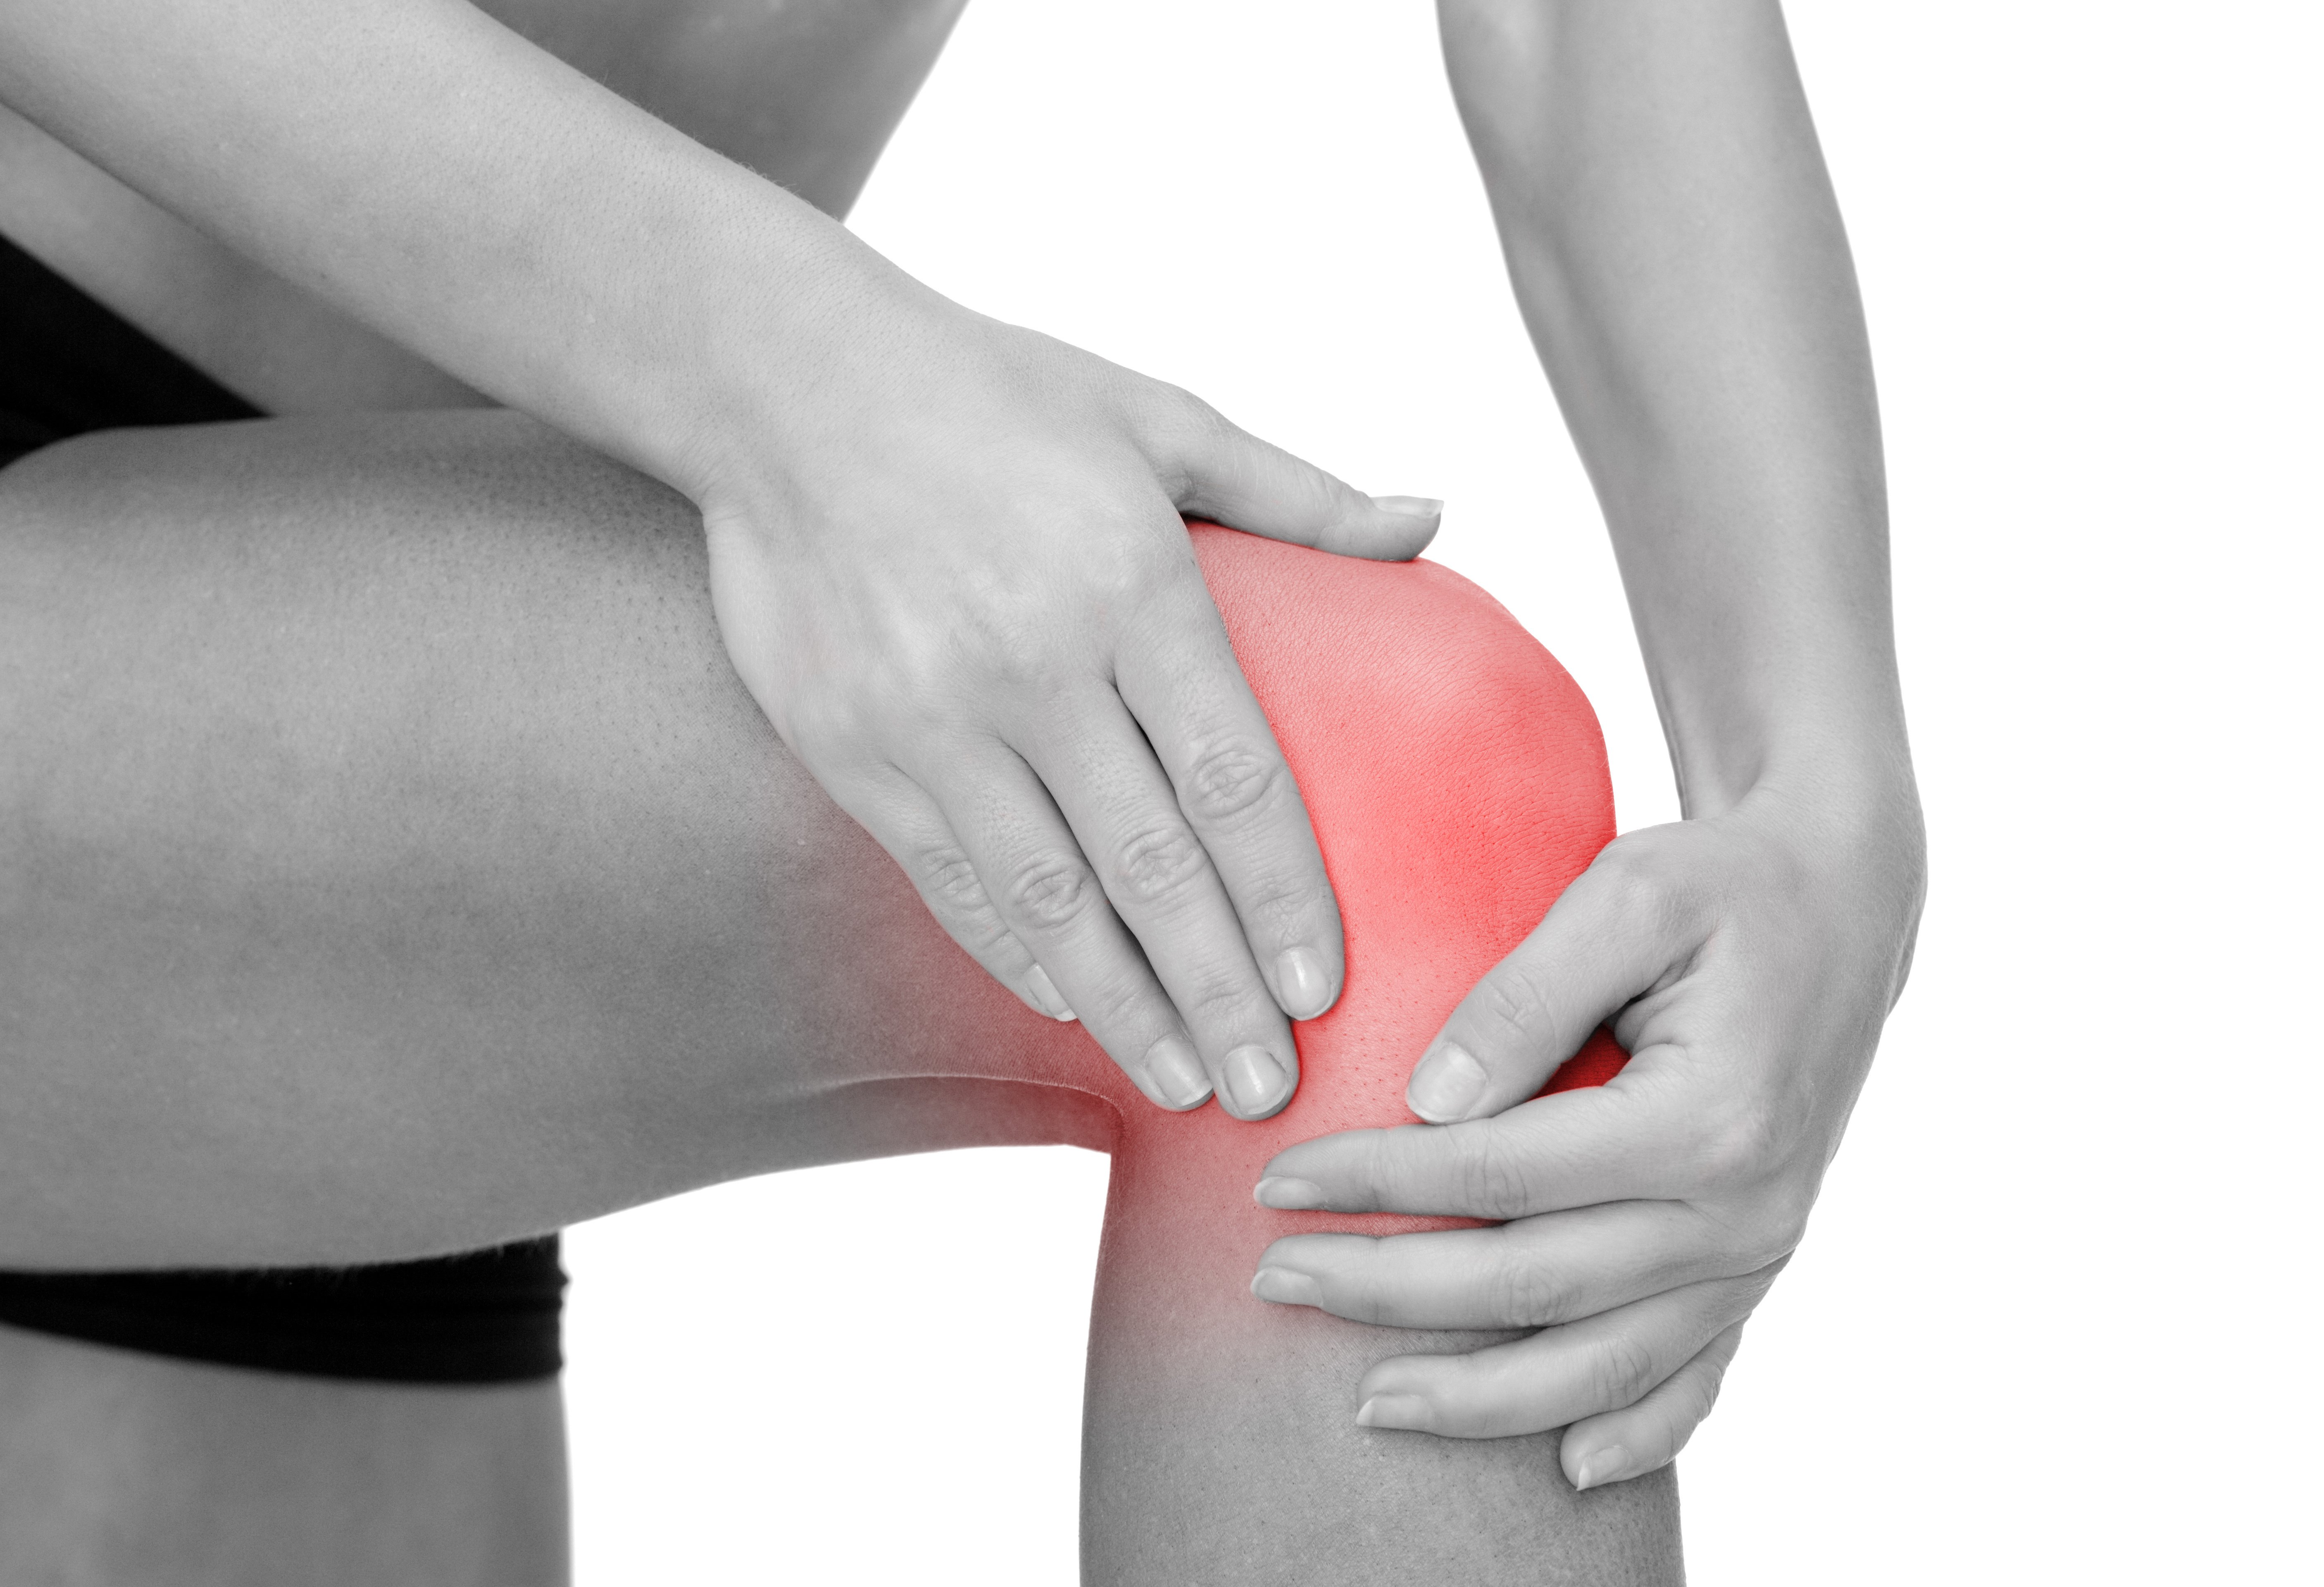 knee pain and muscle imbalance | trubody wellness | wellness studio, Skeleton